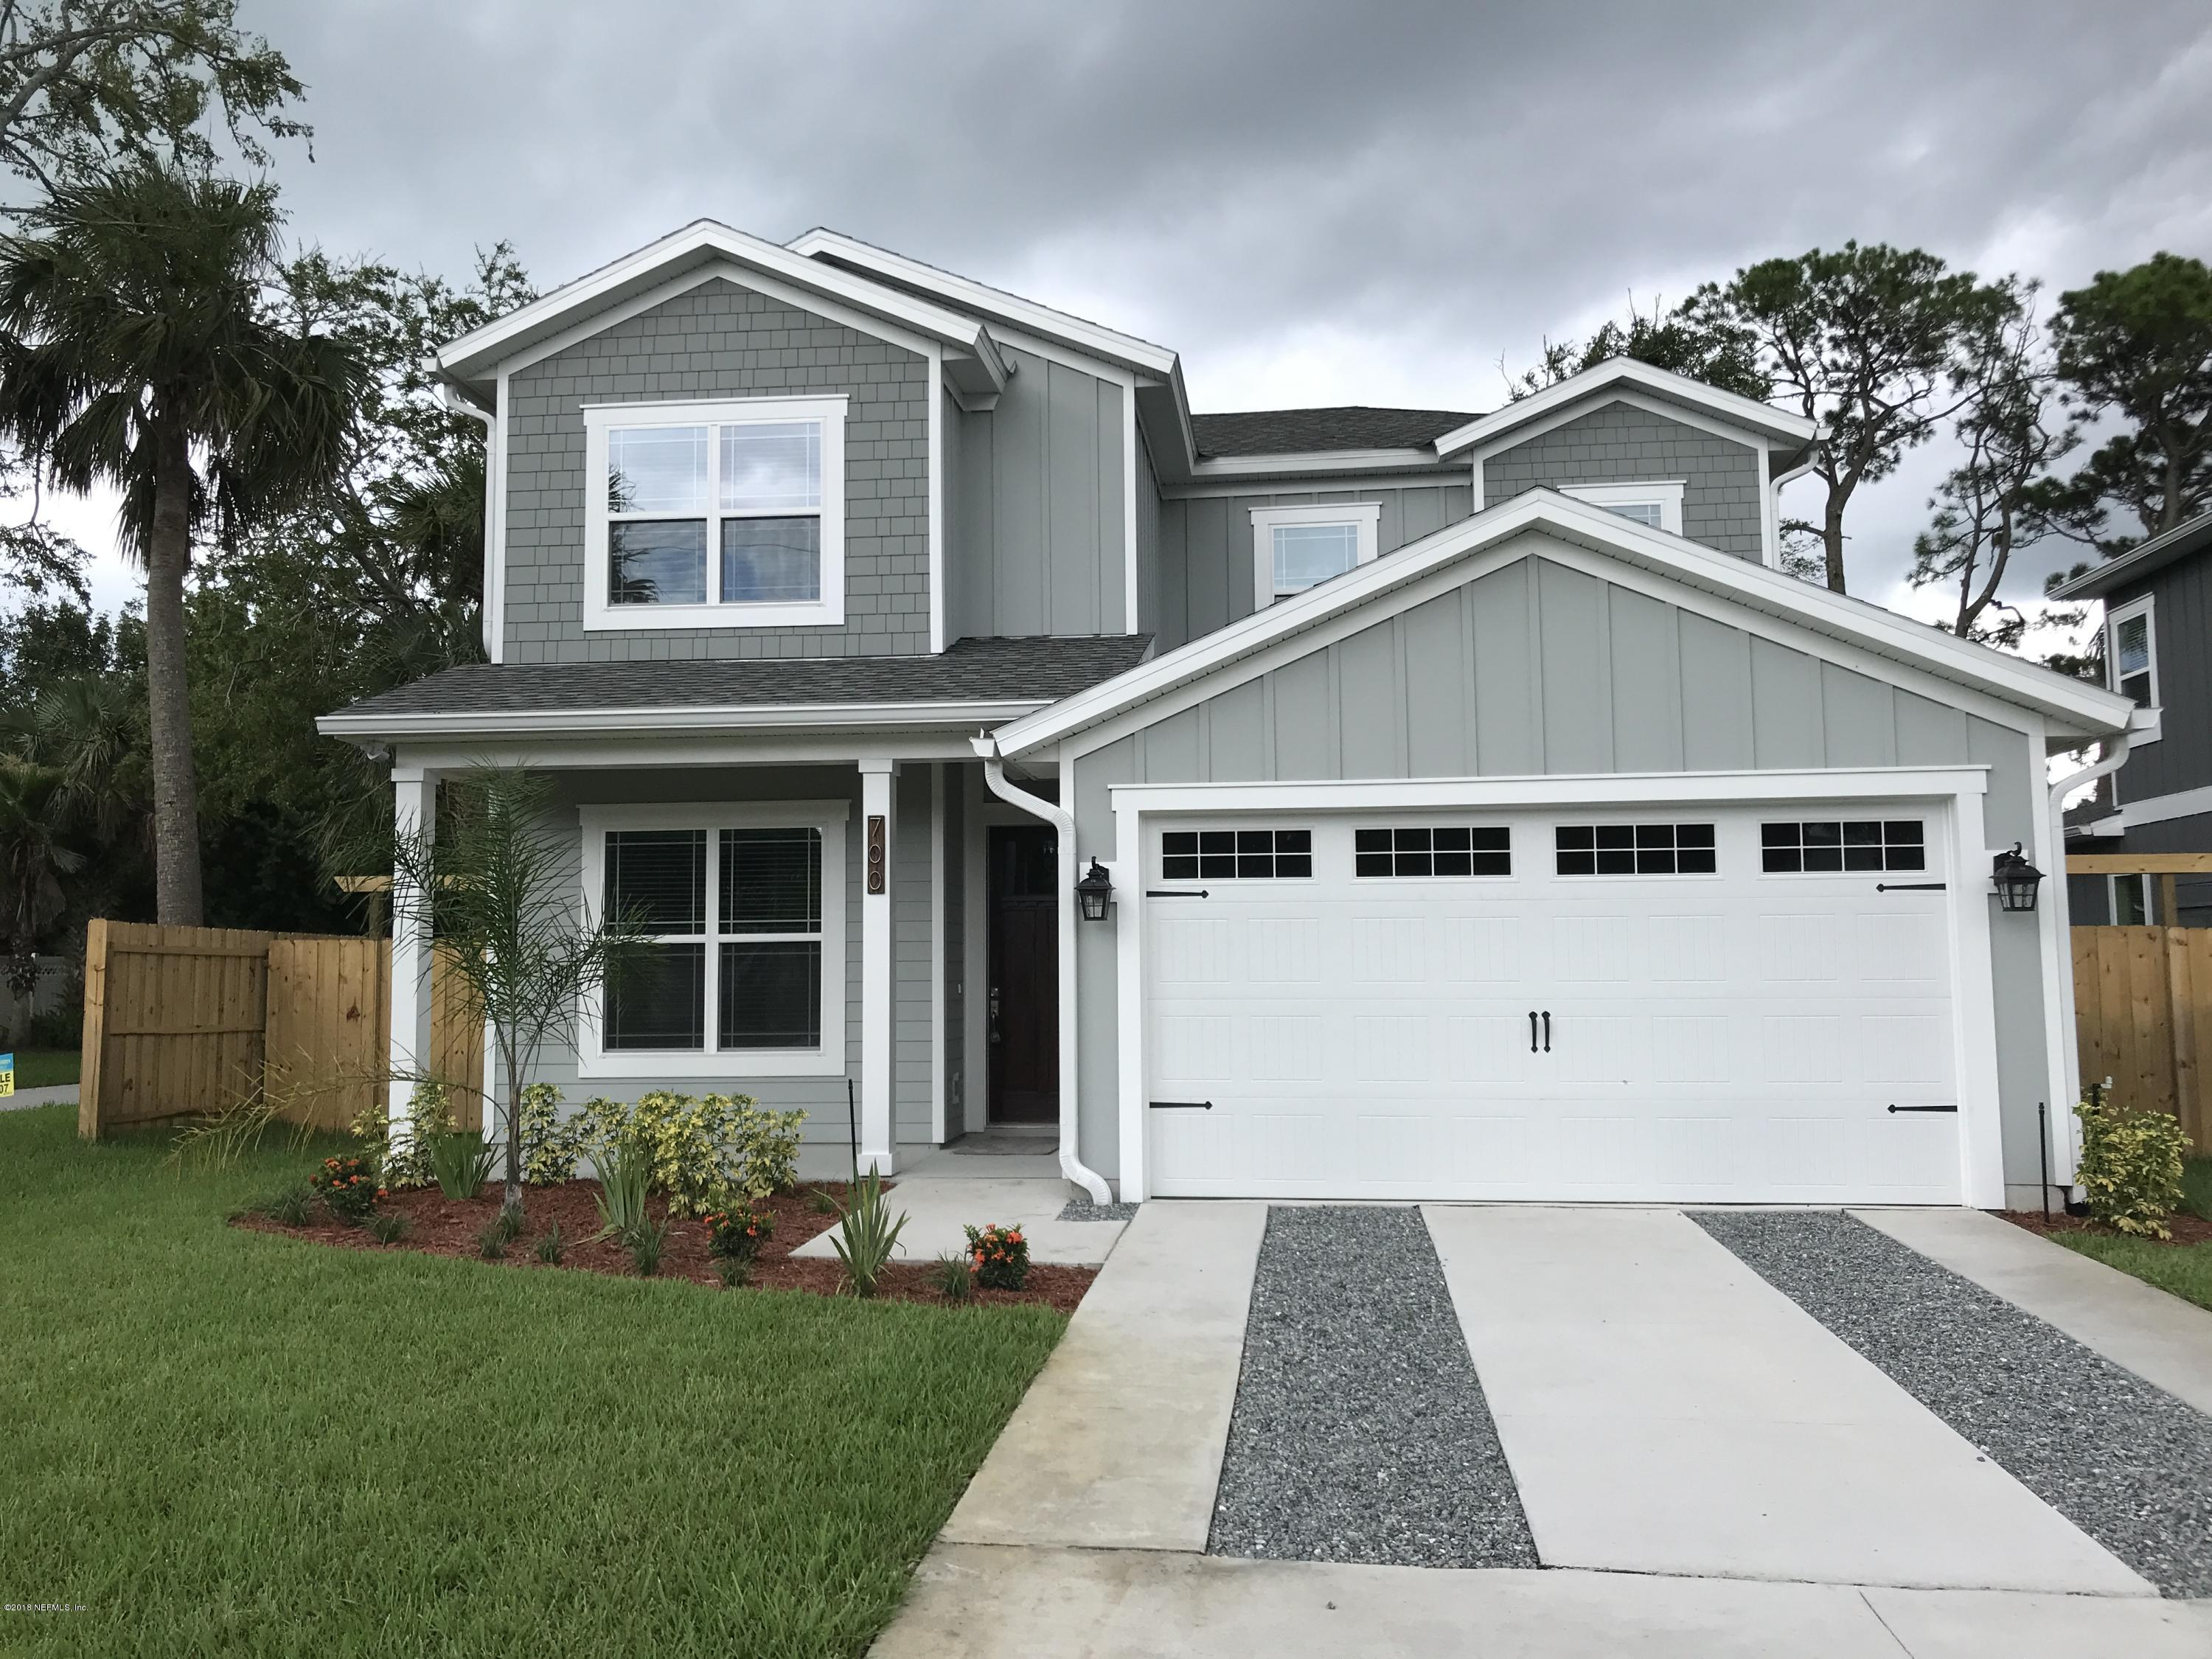 700 5TH, JACKSONVILLE BEACH, FLORIDA 32250, 4 Bedrooms Bedrooms, ,4 BathroomsBathrooms,Residential - single family,For sale,5TH,955262